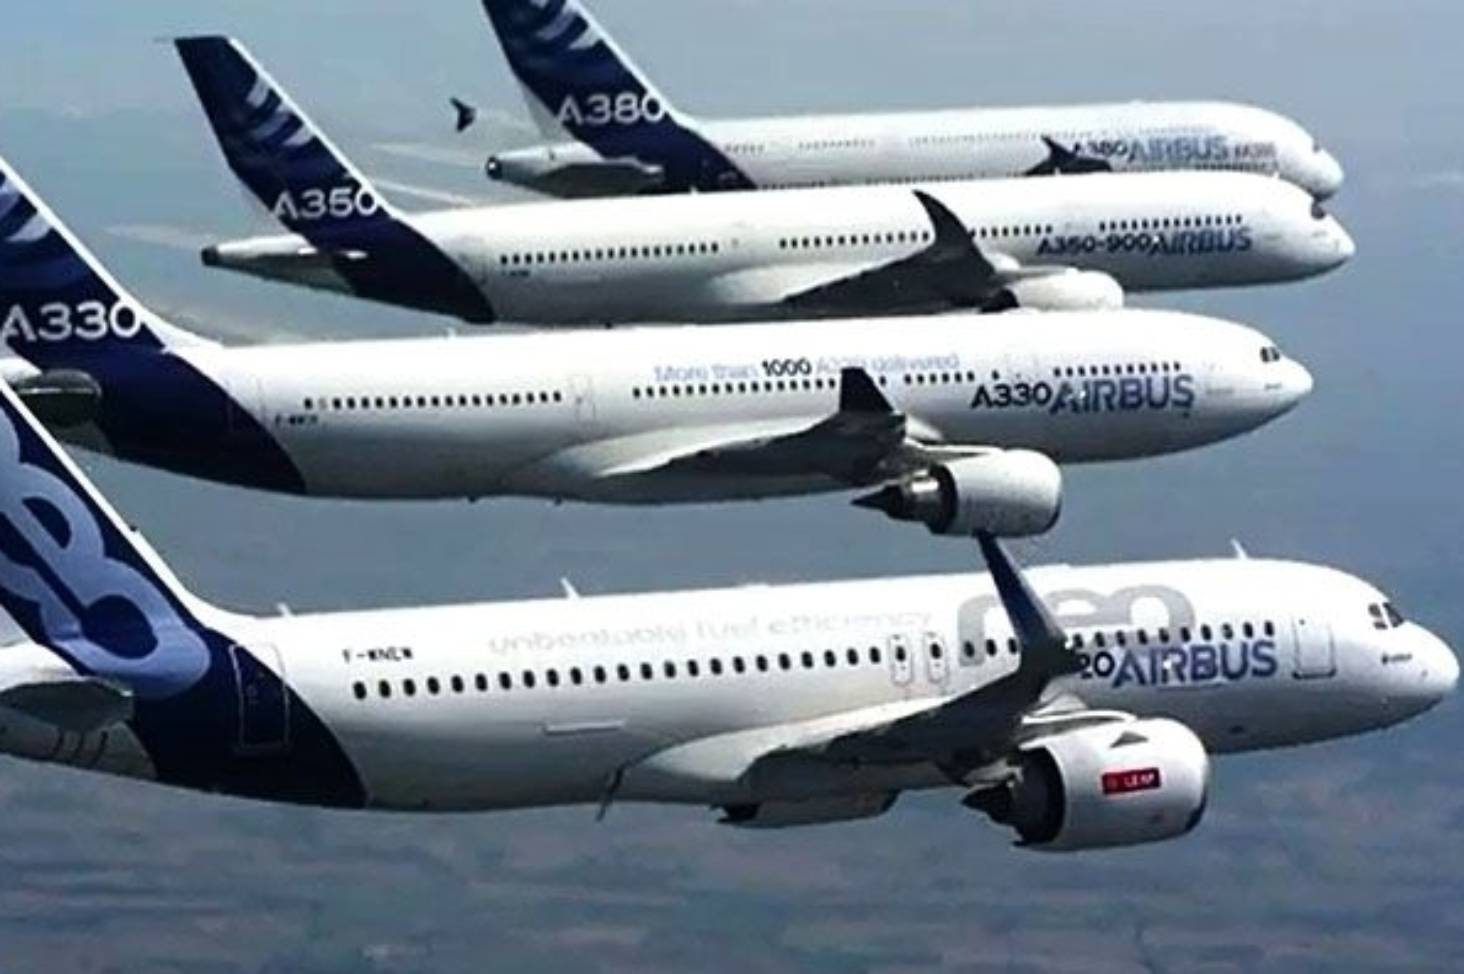 Airbus family flight: A380, A350, A330 and A320 perform spectacular  formation flight | Stuff.co.nz